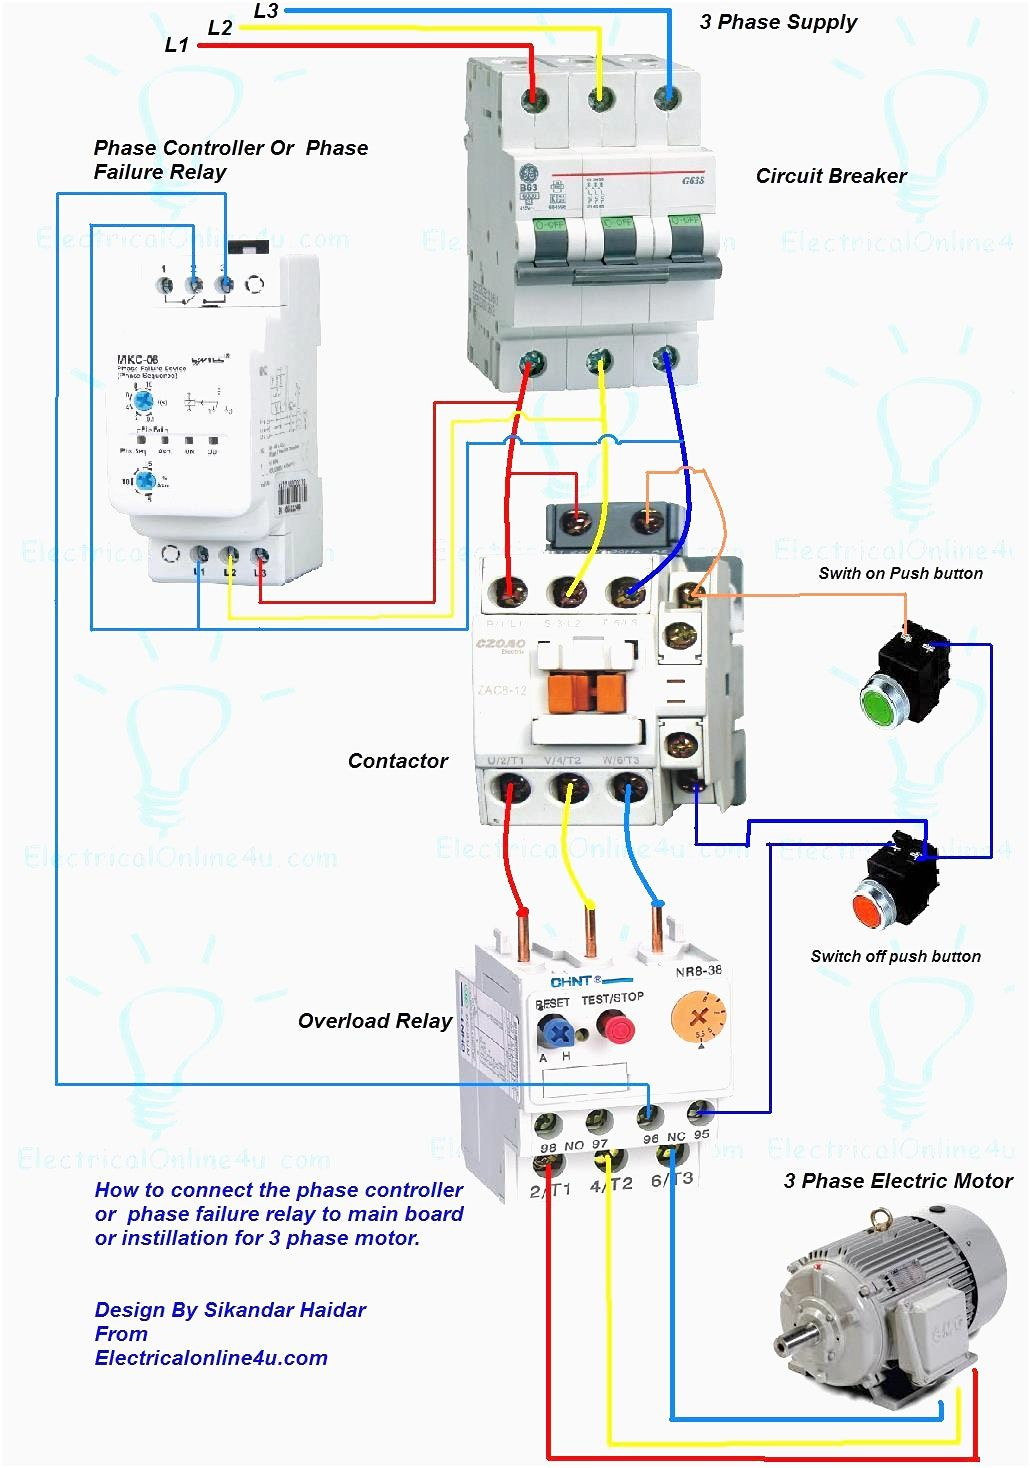 3 phase electrical contactor diagram wiring diagram data single phase transformer wiring diagram wiring diagram for motor starter 3 phase controller failure relay voltage electrical diagram 3 phase electrical contactor diagram